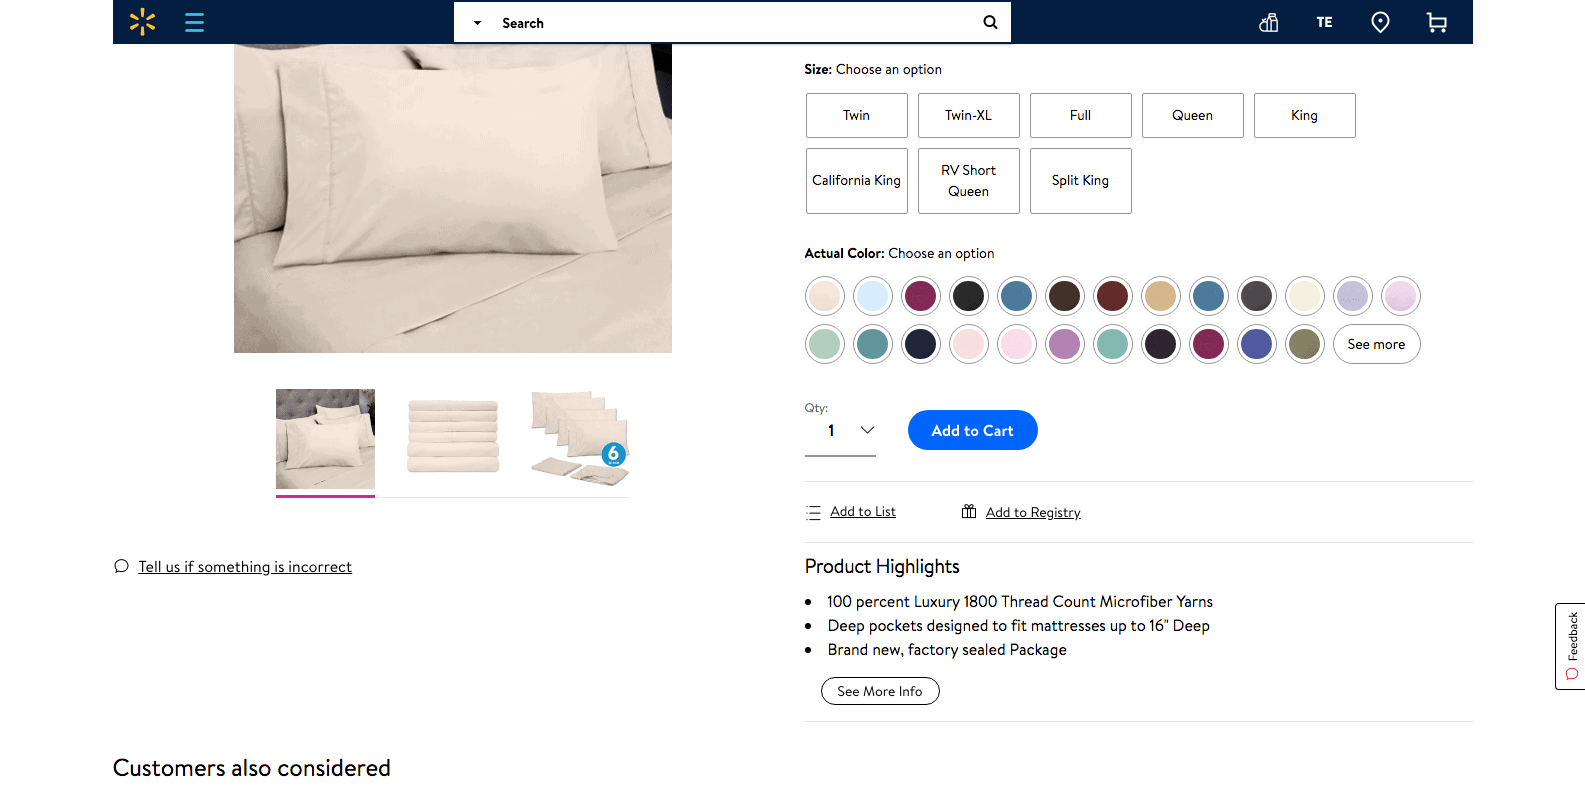 screenshot www.walmart.com 2019.05.18 14 02 49